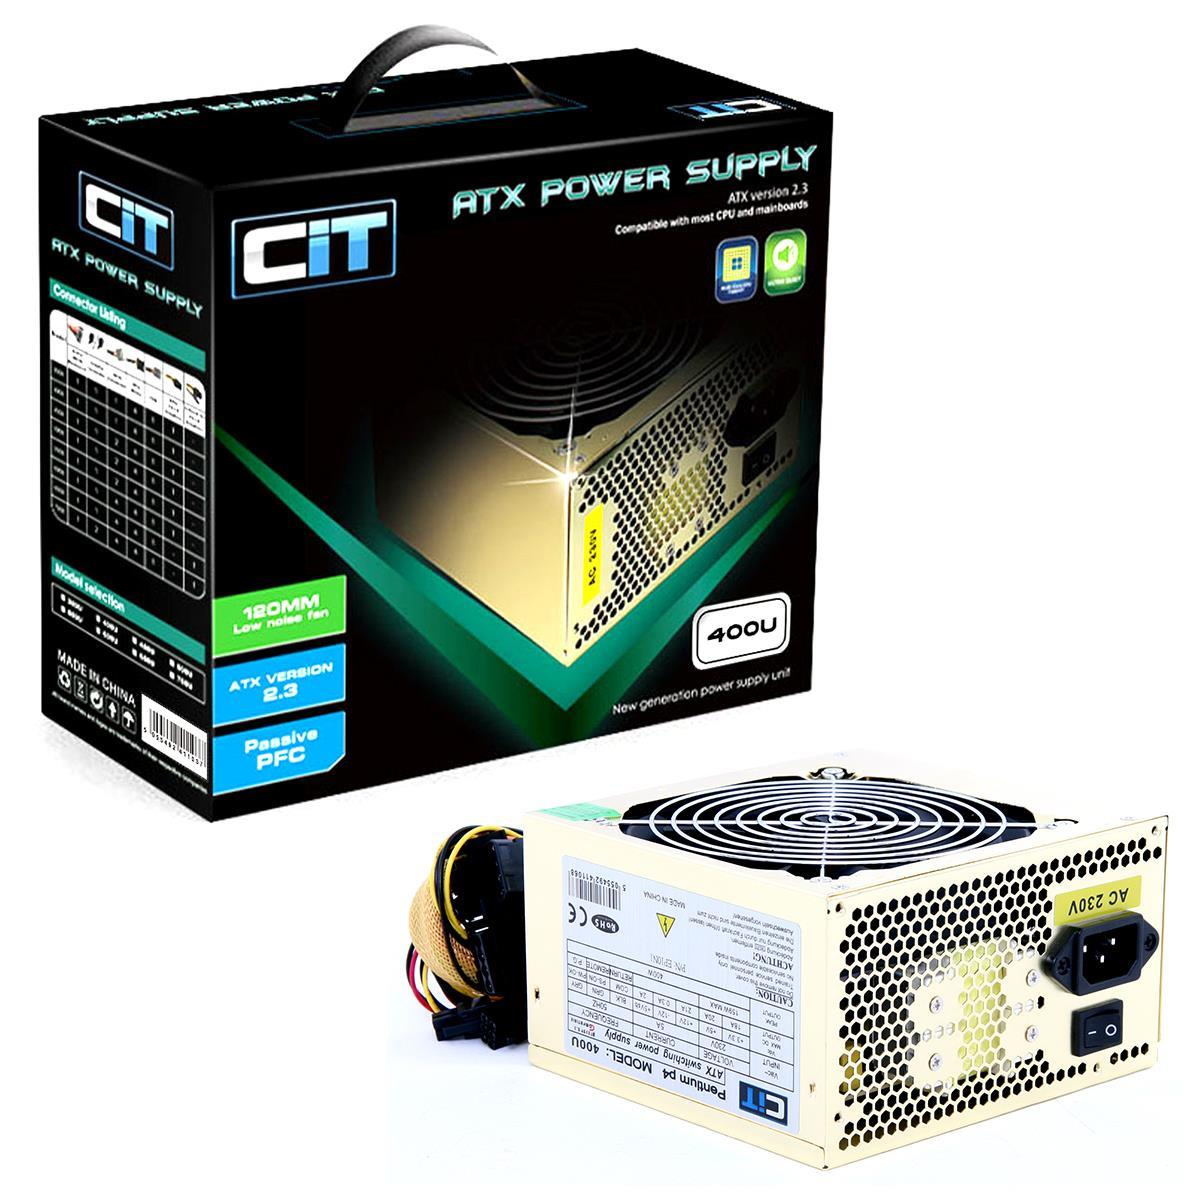 Cit 400W Gold Edition PSU